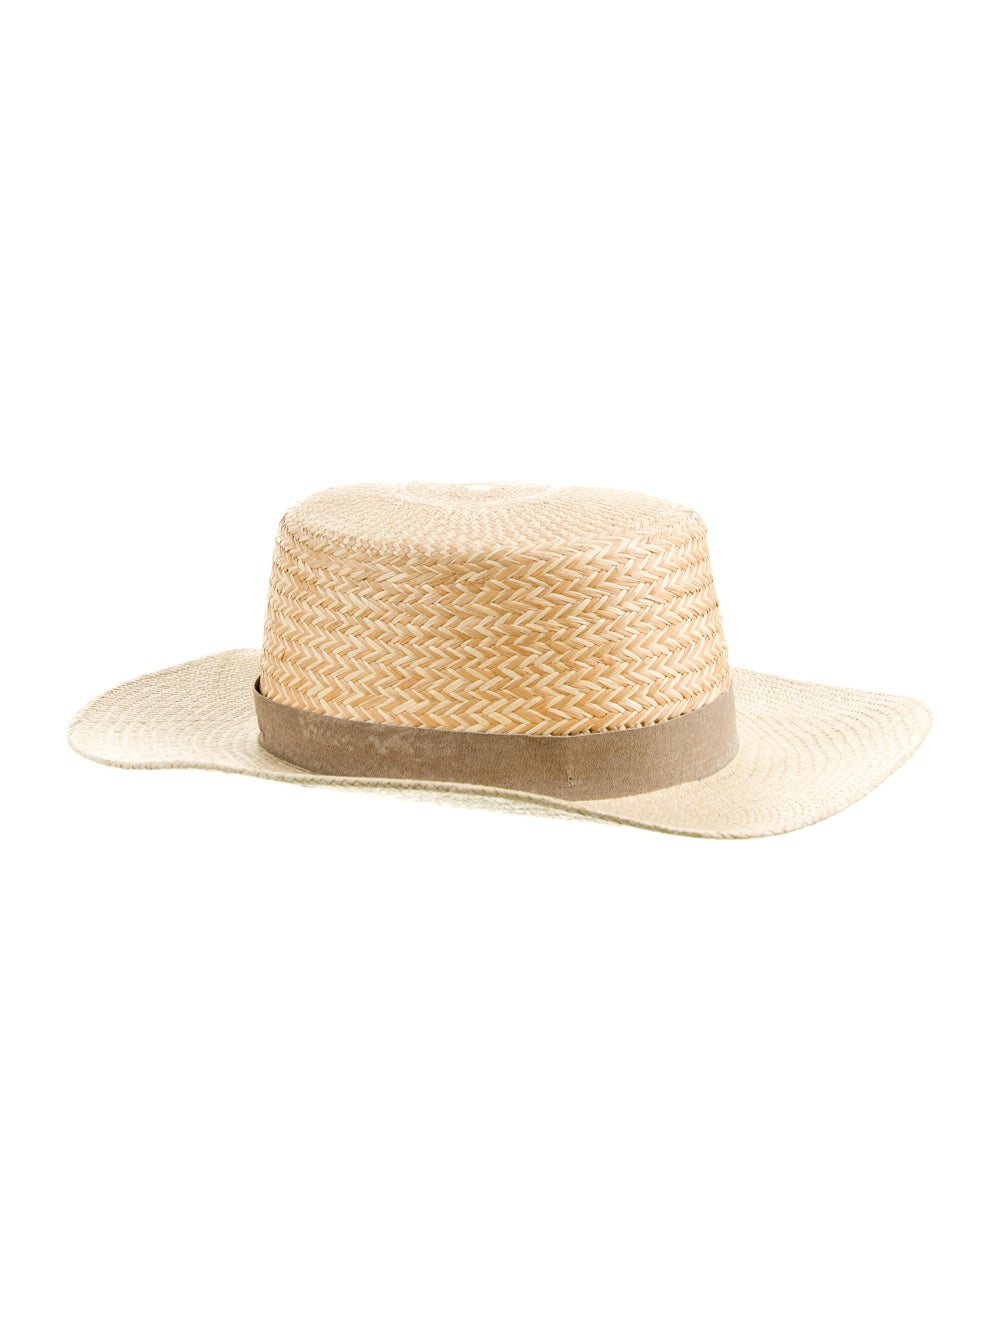 Kin The Label Straw Summer Hat - image 2